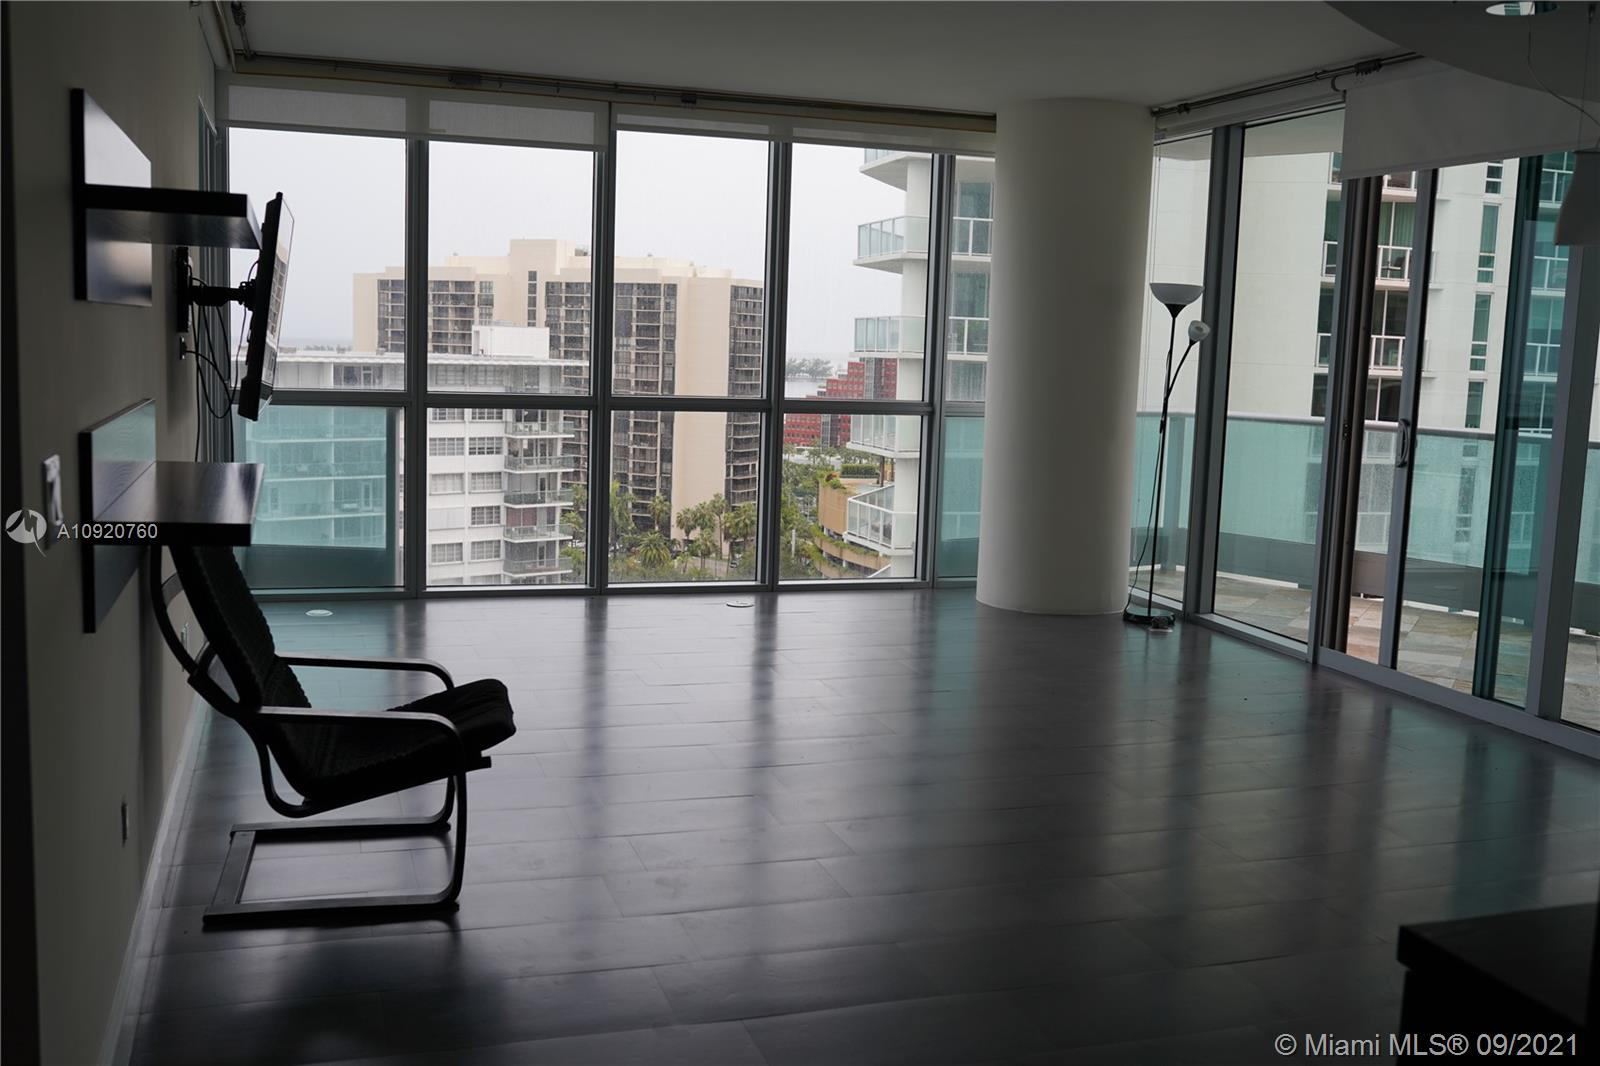 Right in the heart of downtown Miami this move-in ready with panoramic views, over Biscayne Bay, Key Biscayne, Miami Beach, Atlantic Ocean & Miami. Beautiful stone floors throughout & wood floors in all bedrooms, open living & dining areas, family room & sleek gourmet kitche. Amazing bathroom w/exquisite marble floors/walls & Jacuzzi spa tub. Jade Brickell 5-star amenities include 24HR concierge, guest valet, health spa, gym, Resident Club Room, waterfront pool, party room & much more. This unit is truly a must see.  UNIT IS TENANT OCCUPIED, APPOINTMENTS ARE REQUIRED 48 HRS PRIOR.